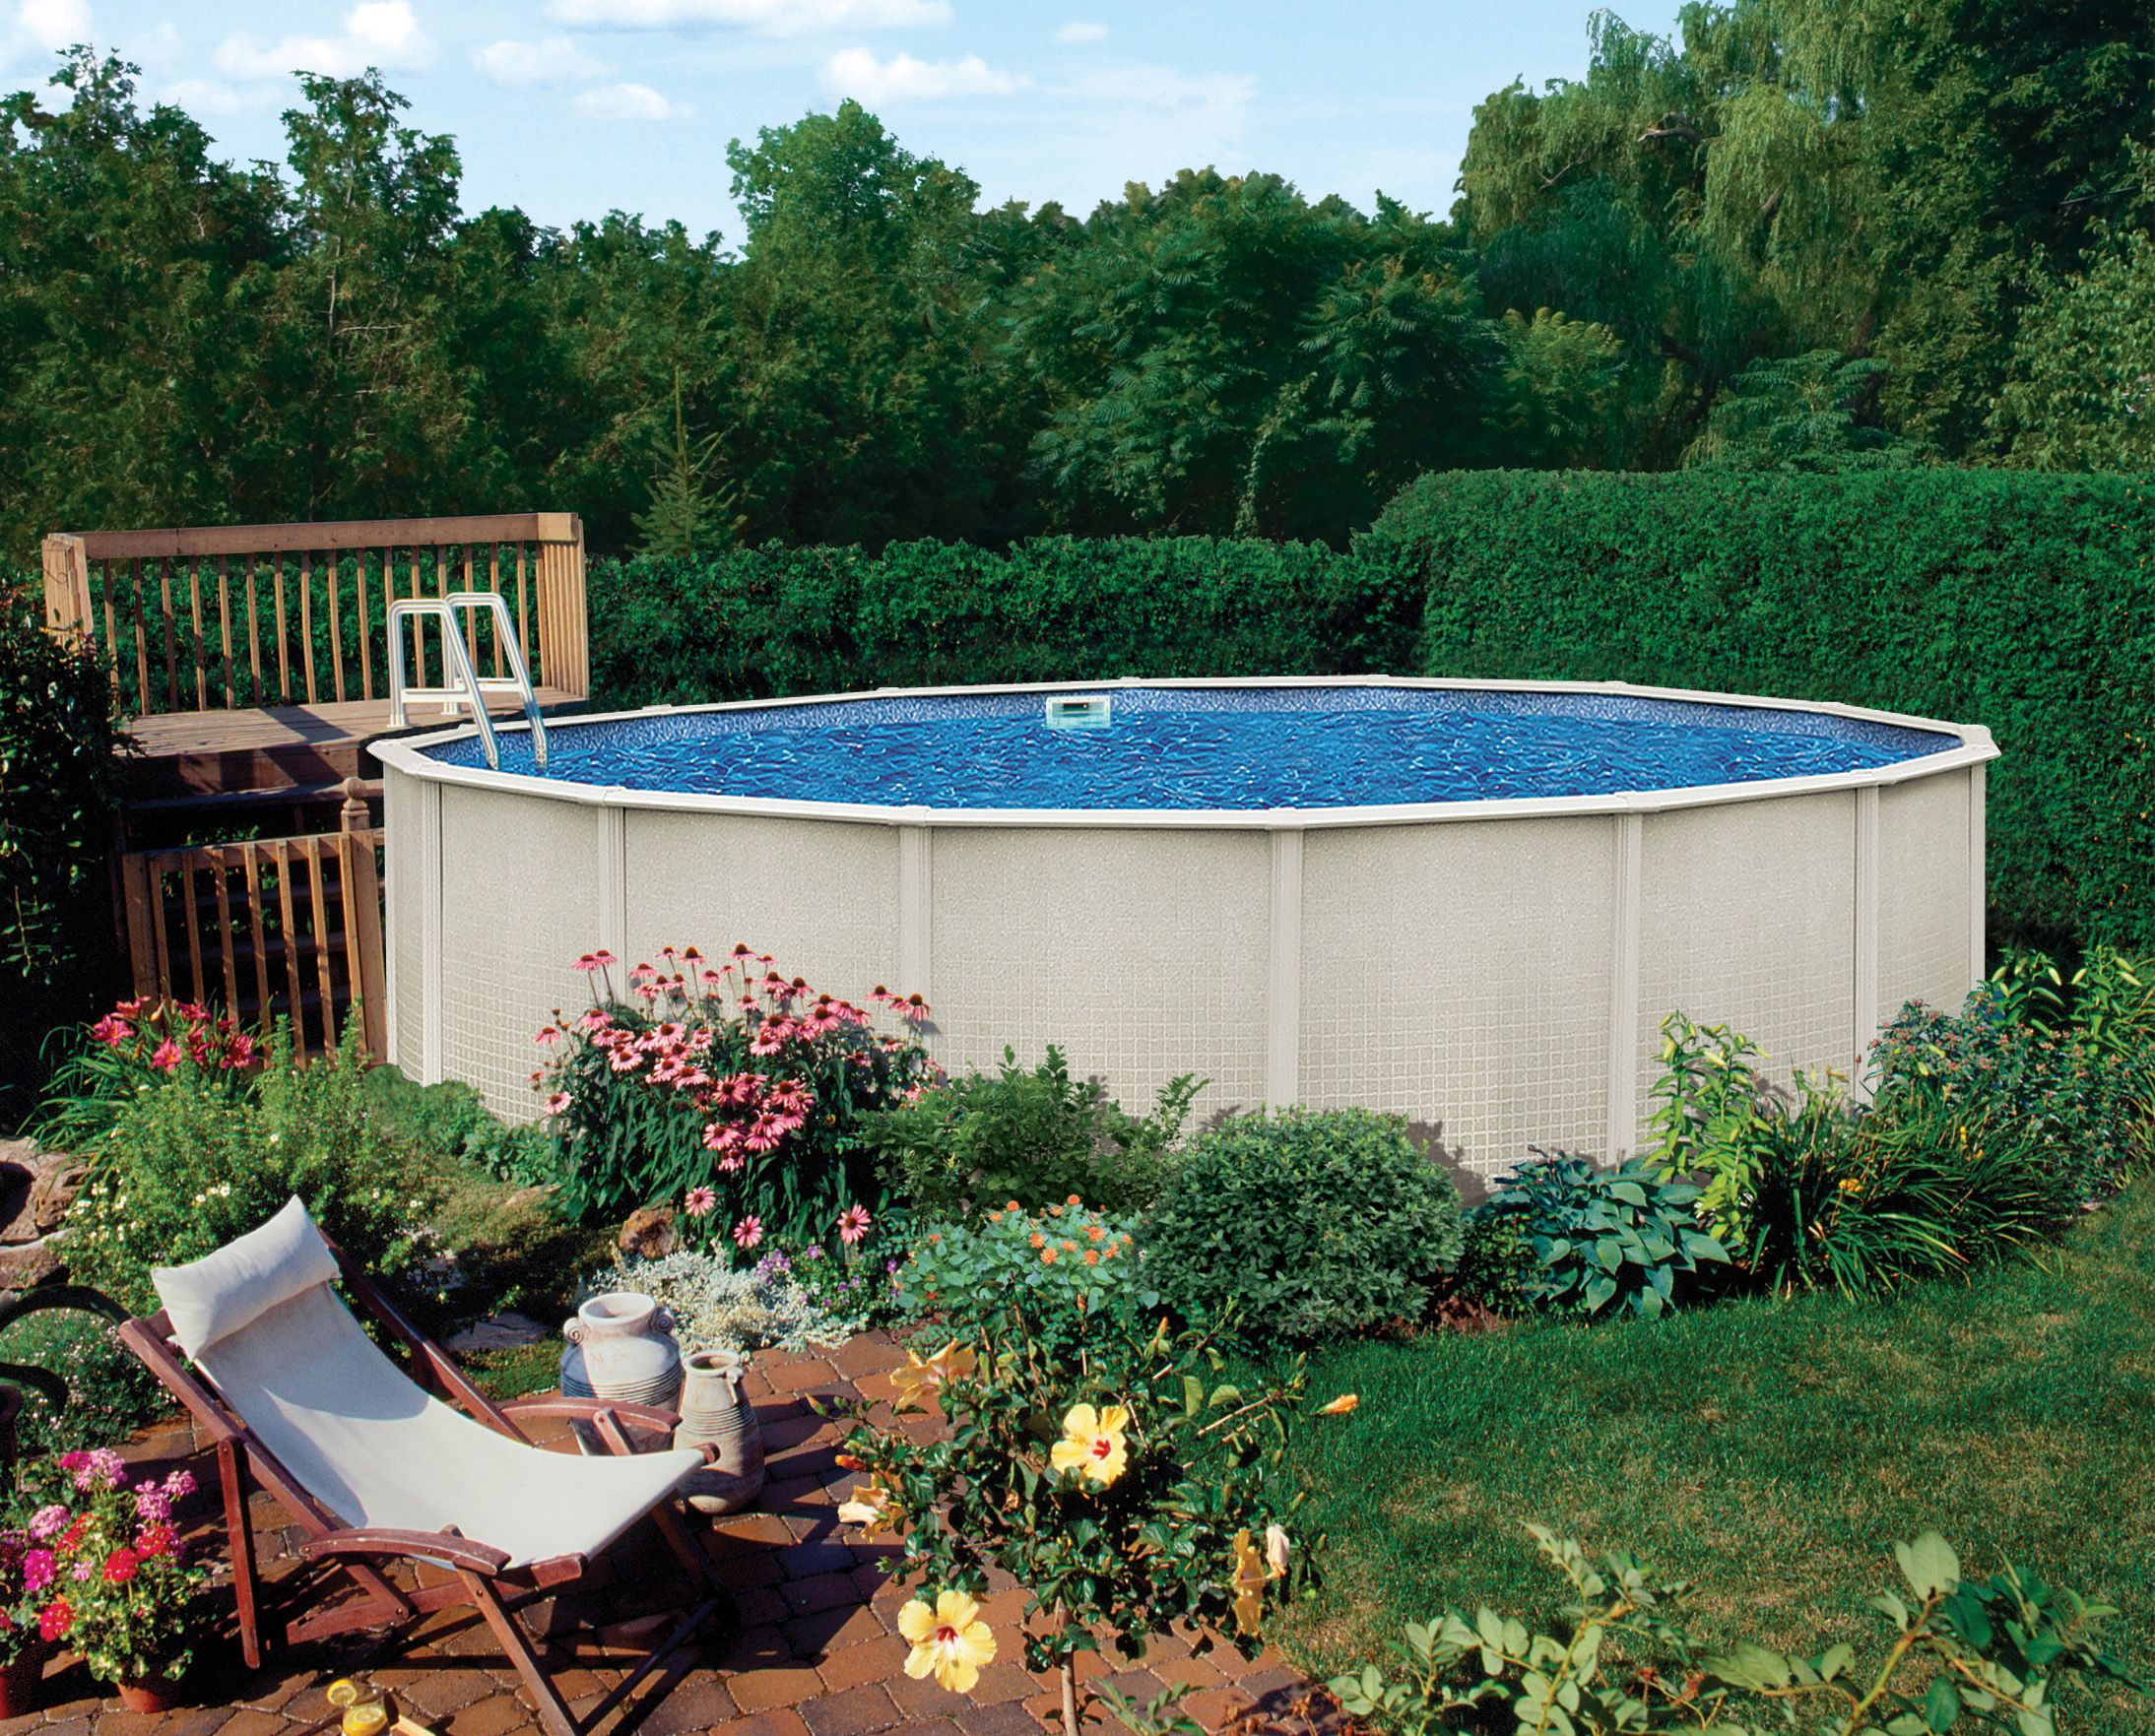 Above ground swimming pools, The Belize 18x33 large above-ground pool